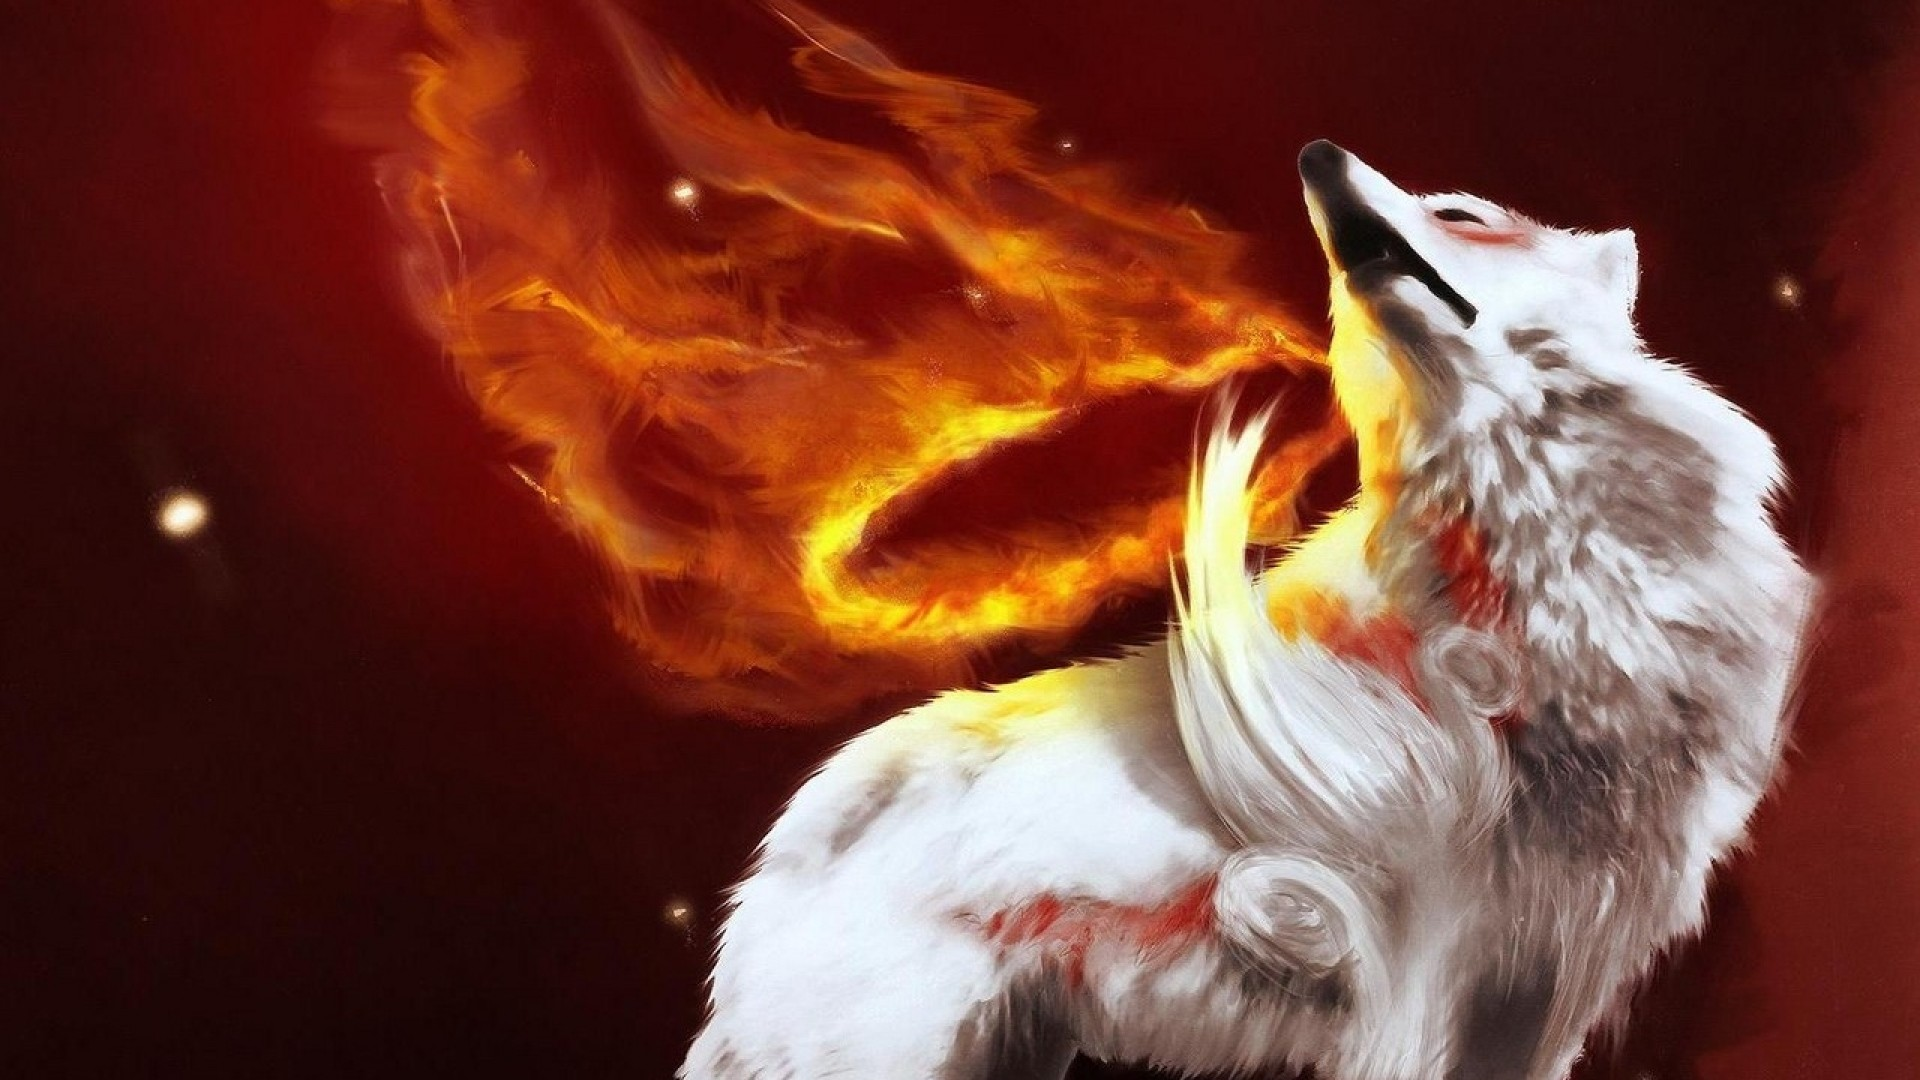 … Background Full HD 1080p. Wallpaper abstraction, fire, wolf,  gray, light